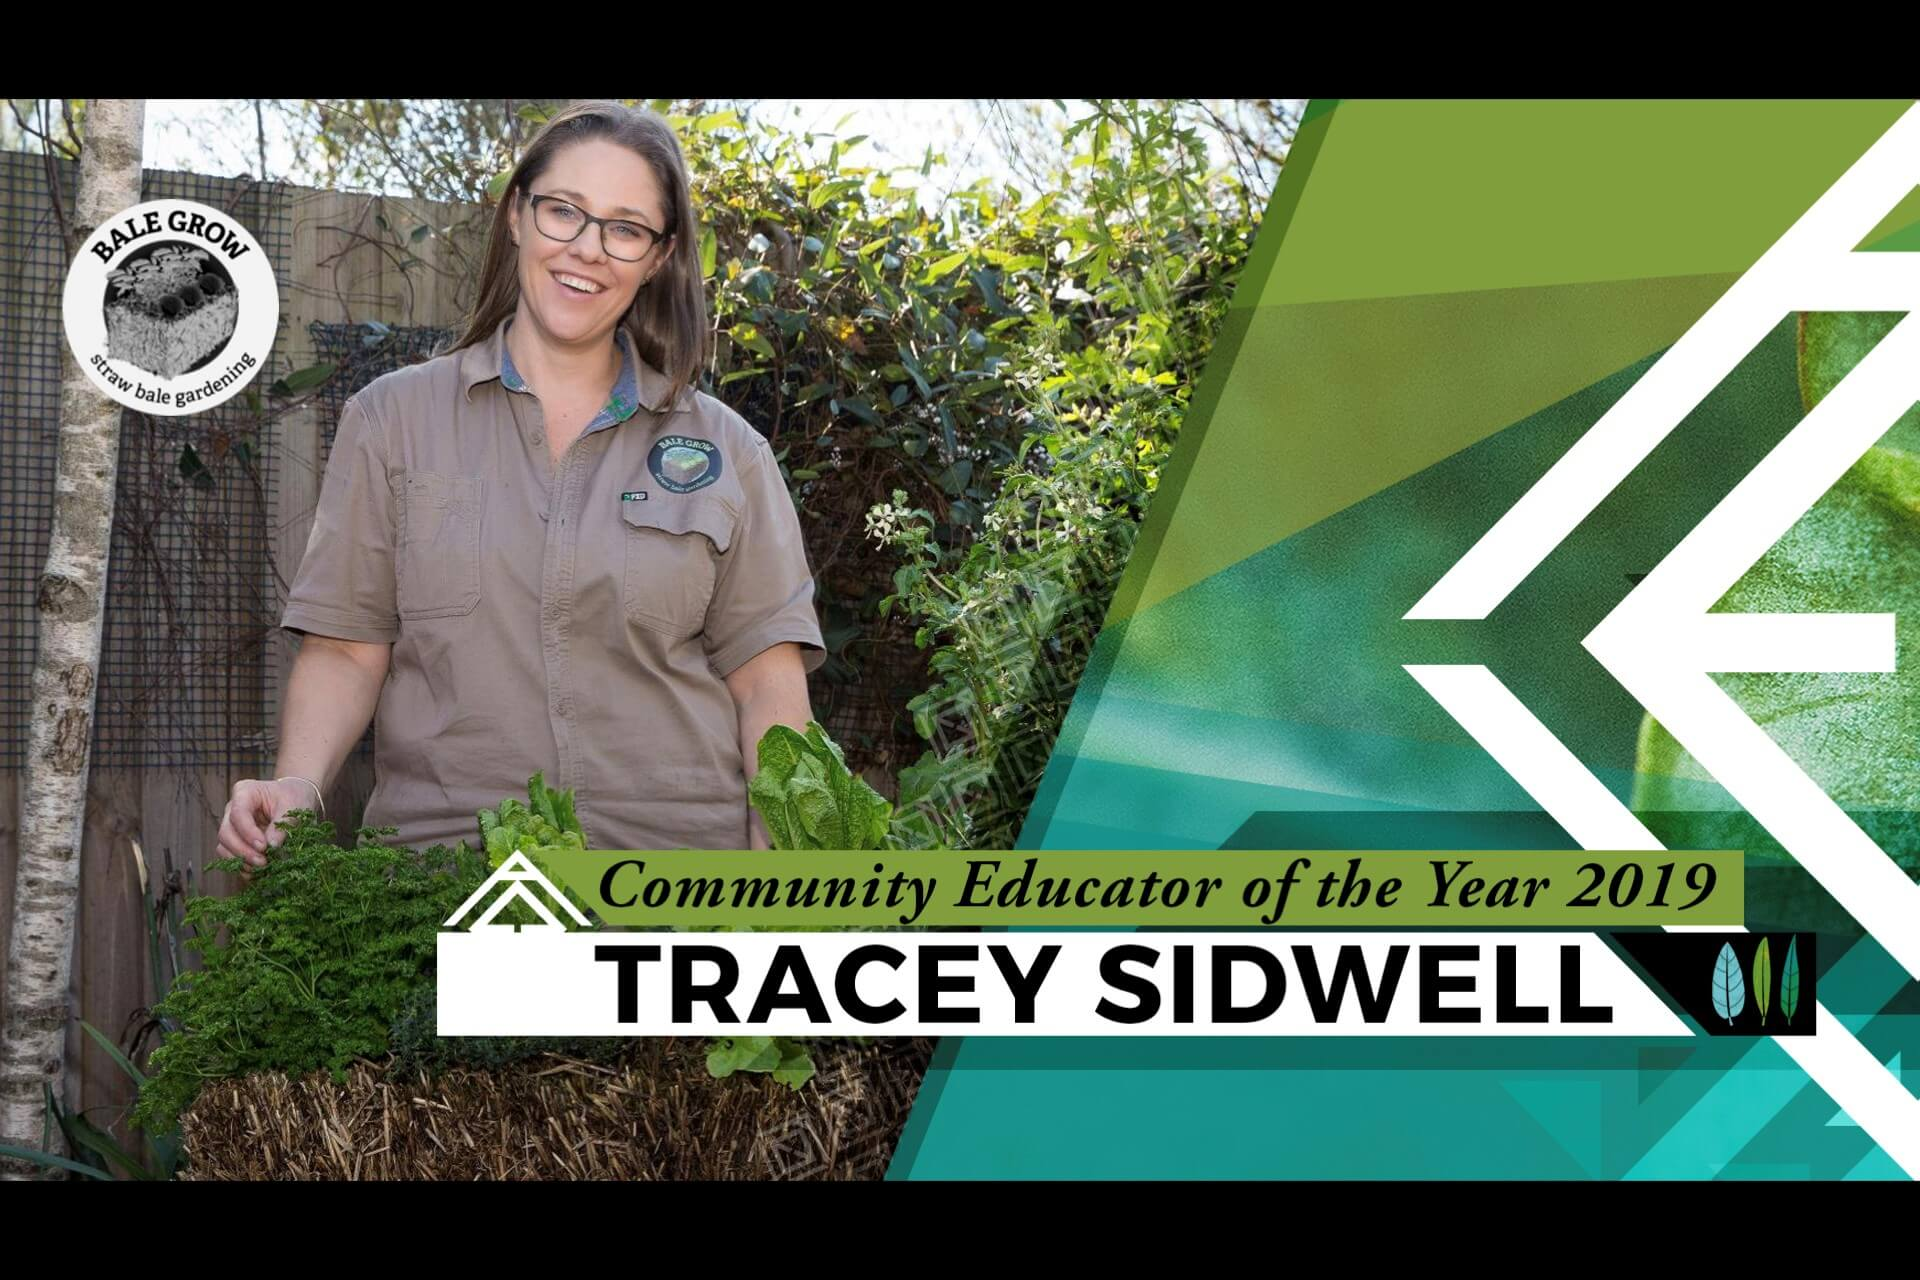 Community Educator of the Year.